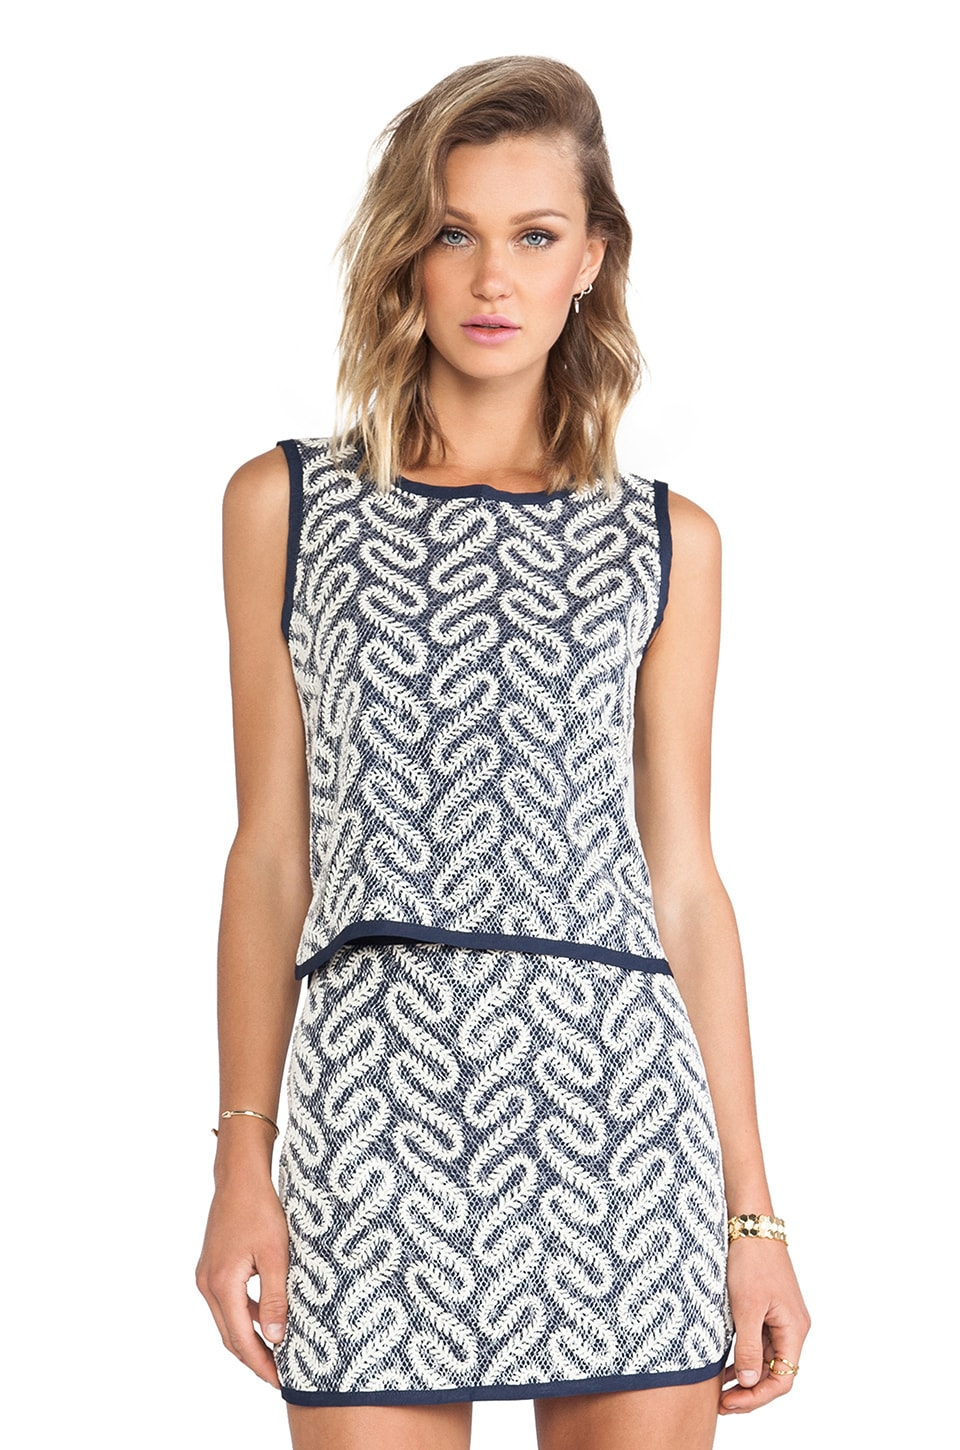 J.O.A. Swirl Printed Tank Top in Navy